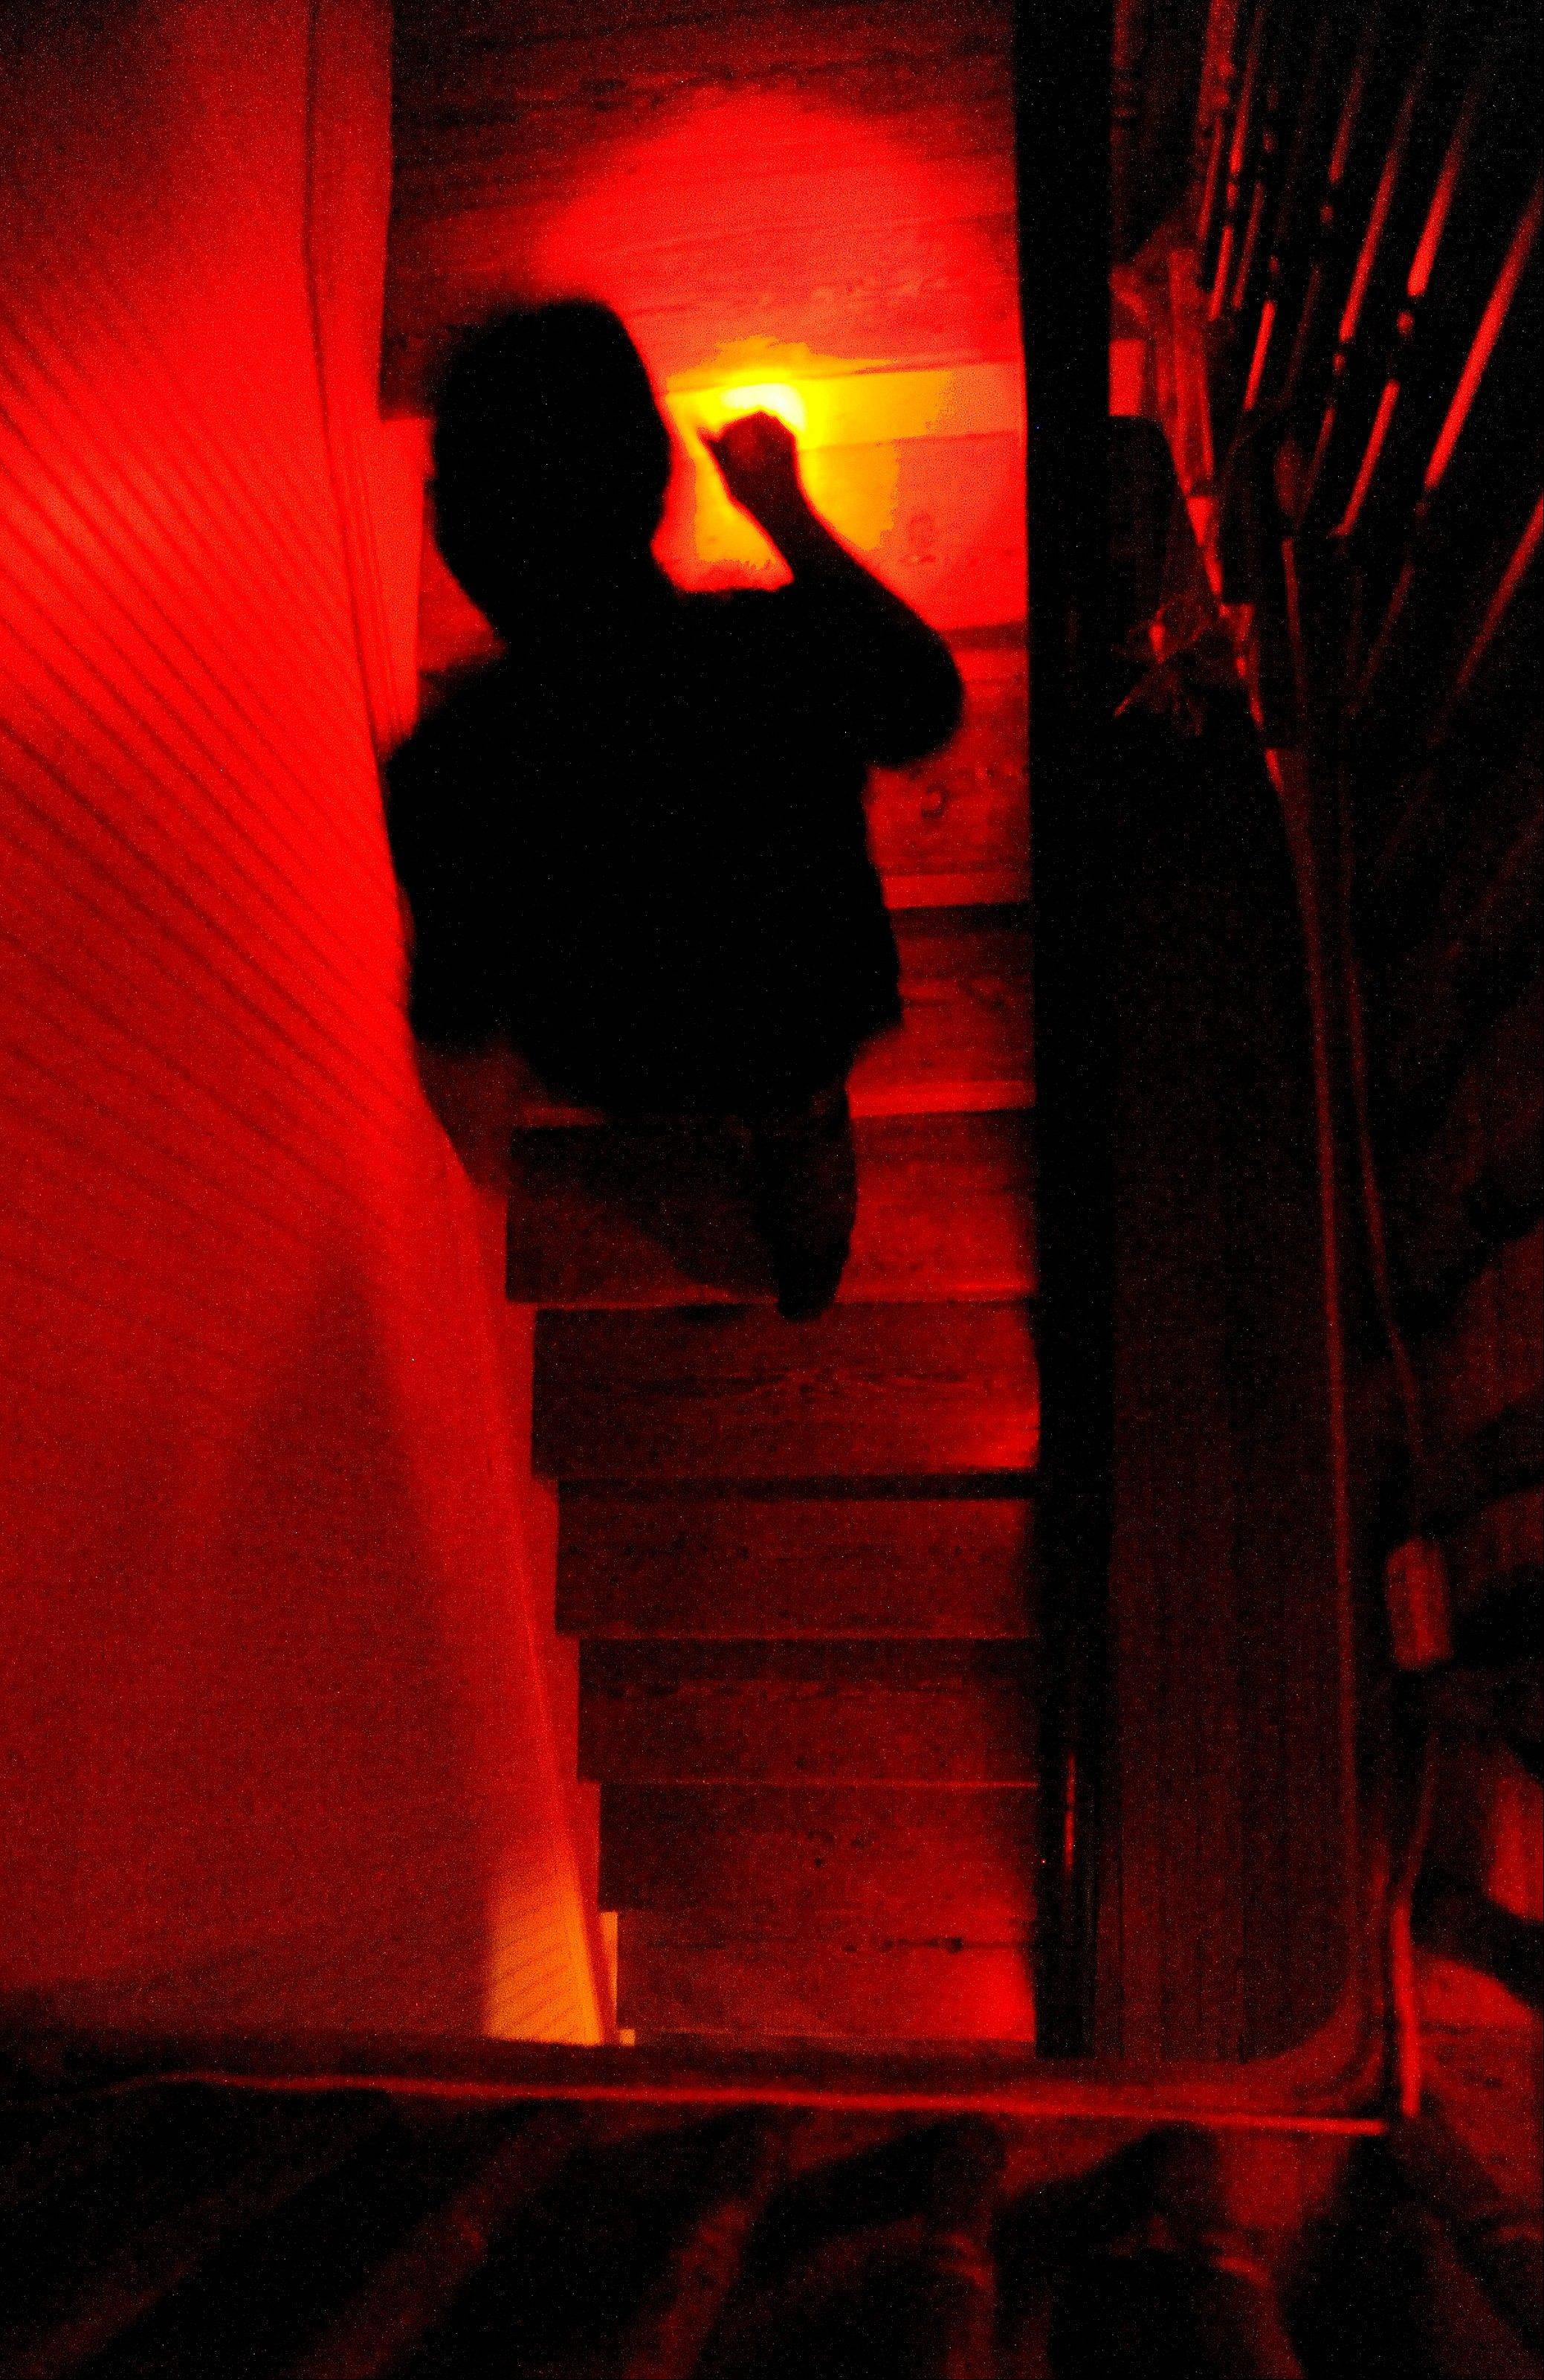 Jason Balbuena, paranormal investigator and night tour coordinator at the Pensacola Lighthouse, is silhouetted by his red-gelled flashlight as he walks up a staircase during a ghost tour at the lighthouse in Pensacola, Fla.